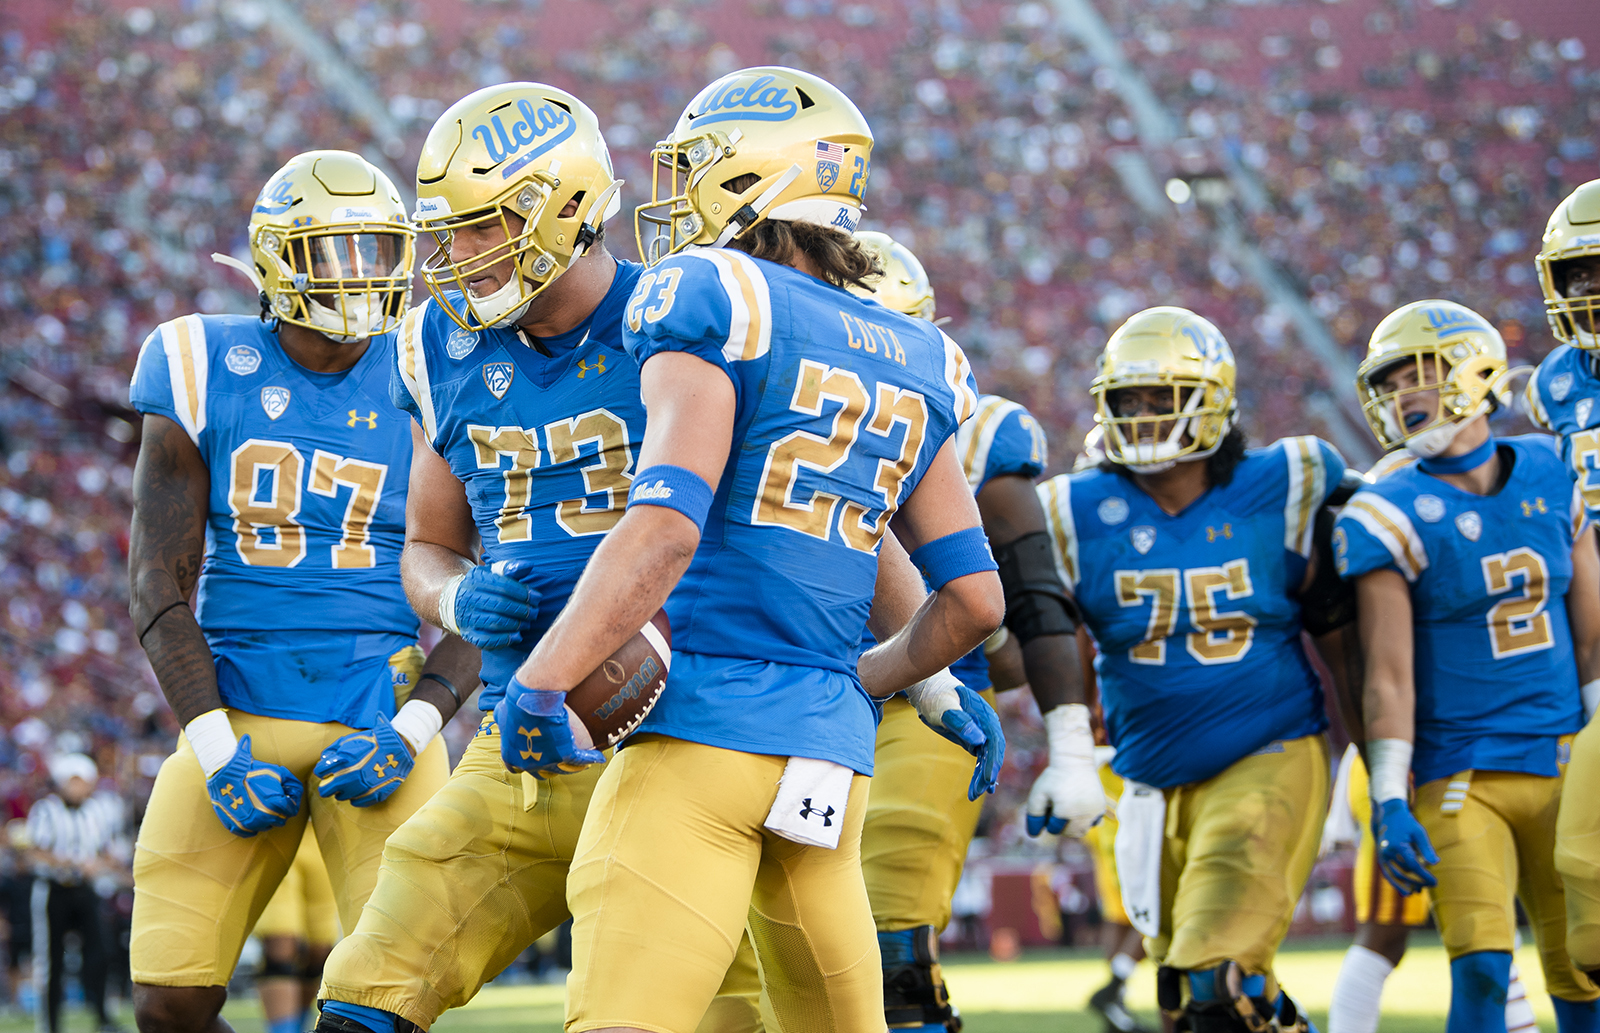 Under Armour working to terminate 15-year, $280M contract with UCLA